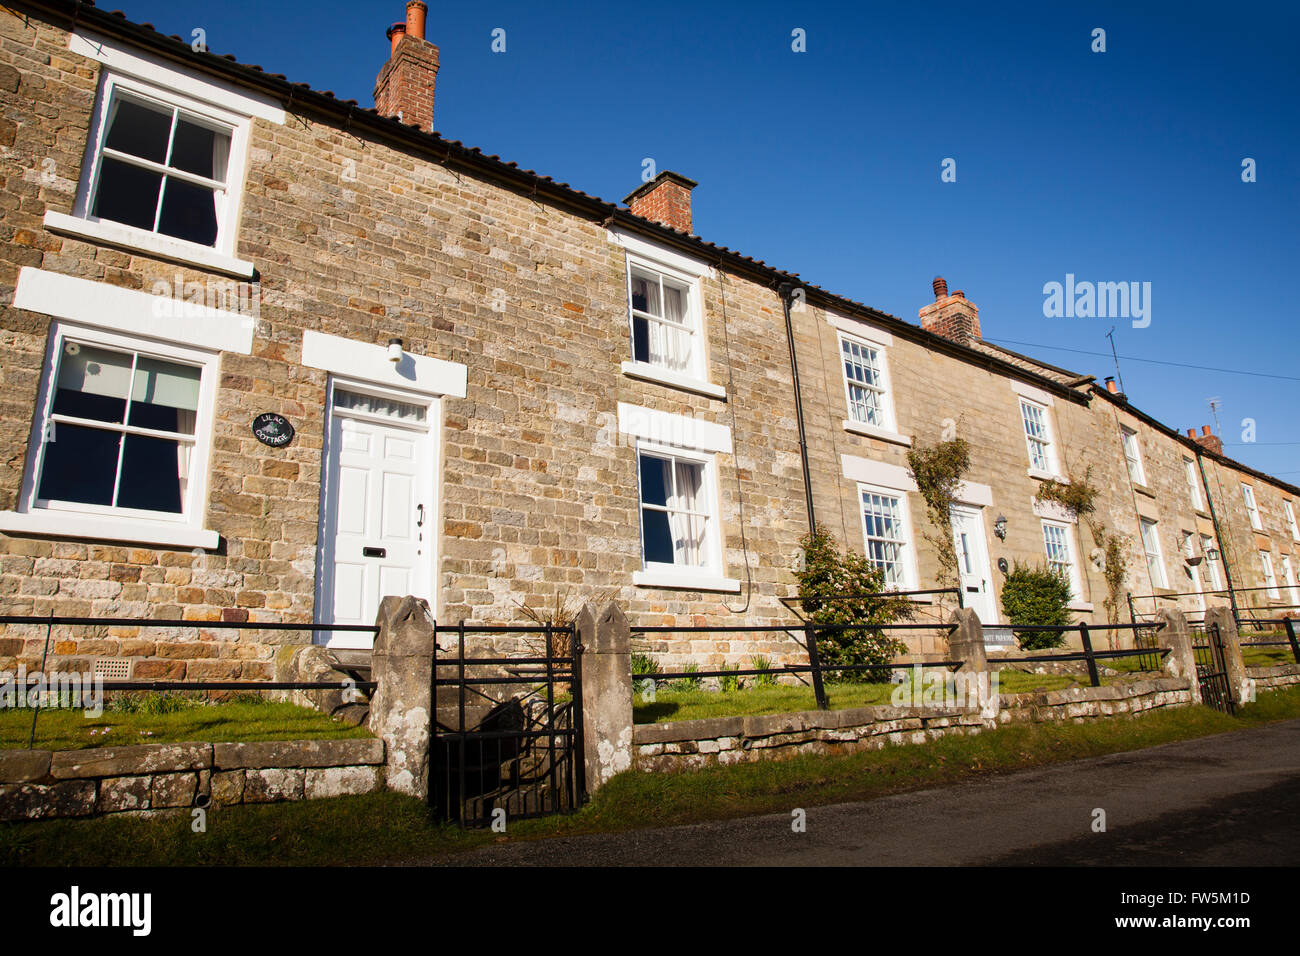 Row of country houses in sunshine - Stock Image